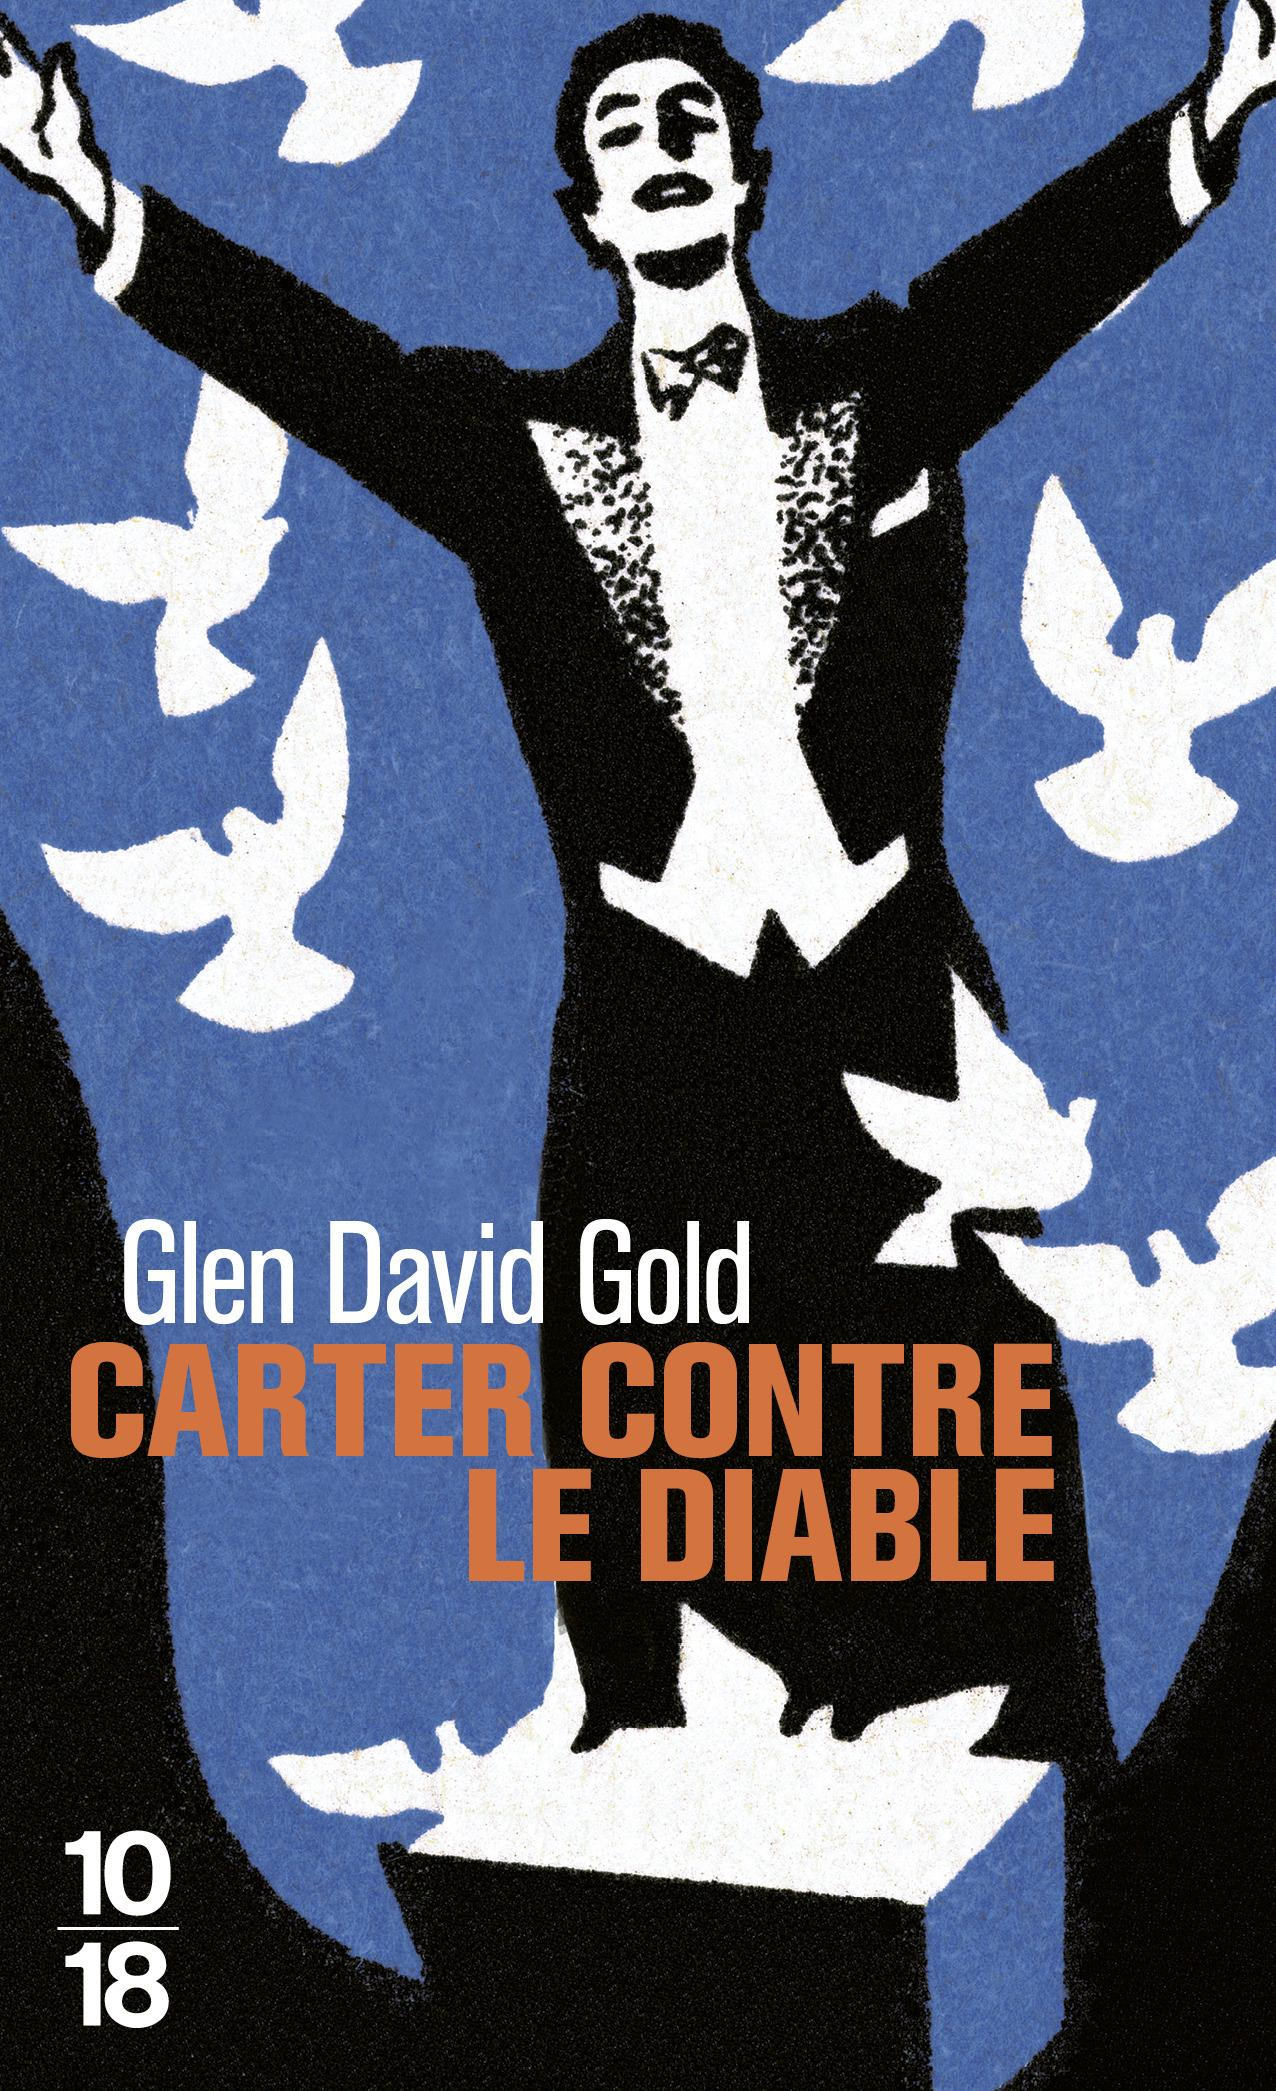 Vente Livre :                                    Carter contre le diable                                      - Glen David Gold